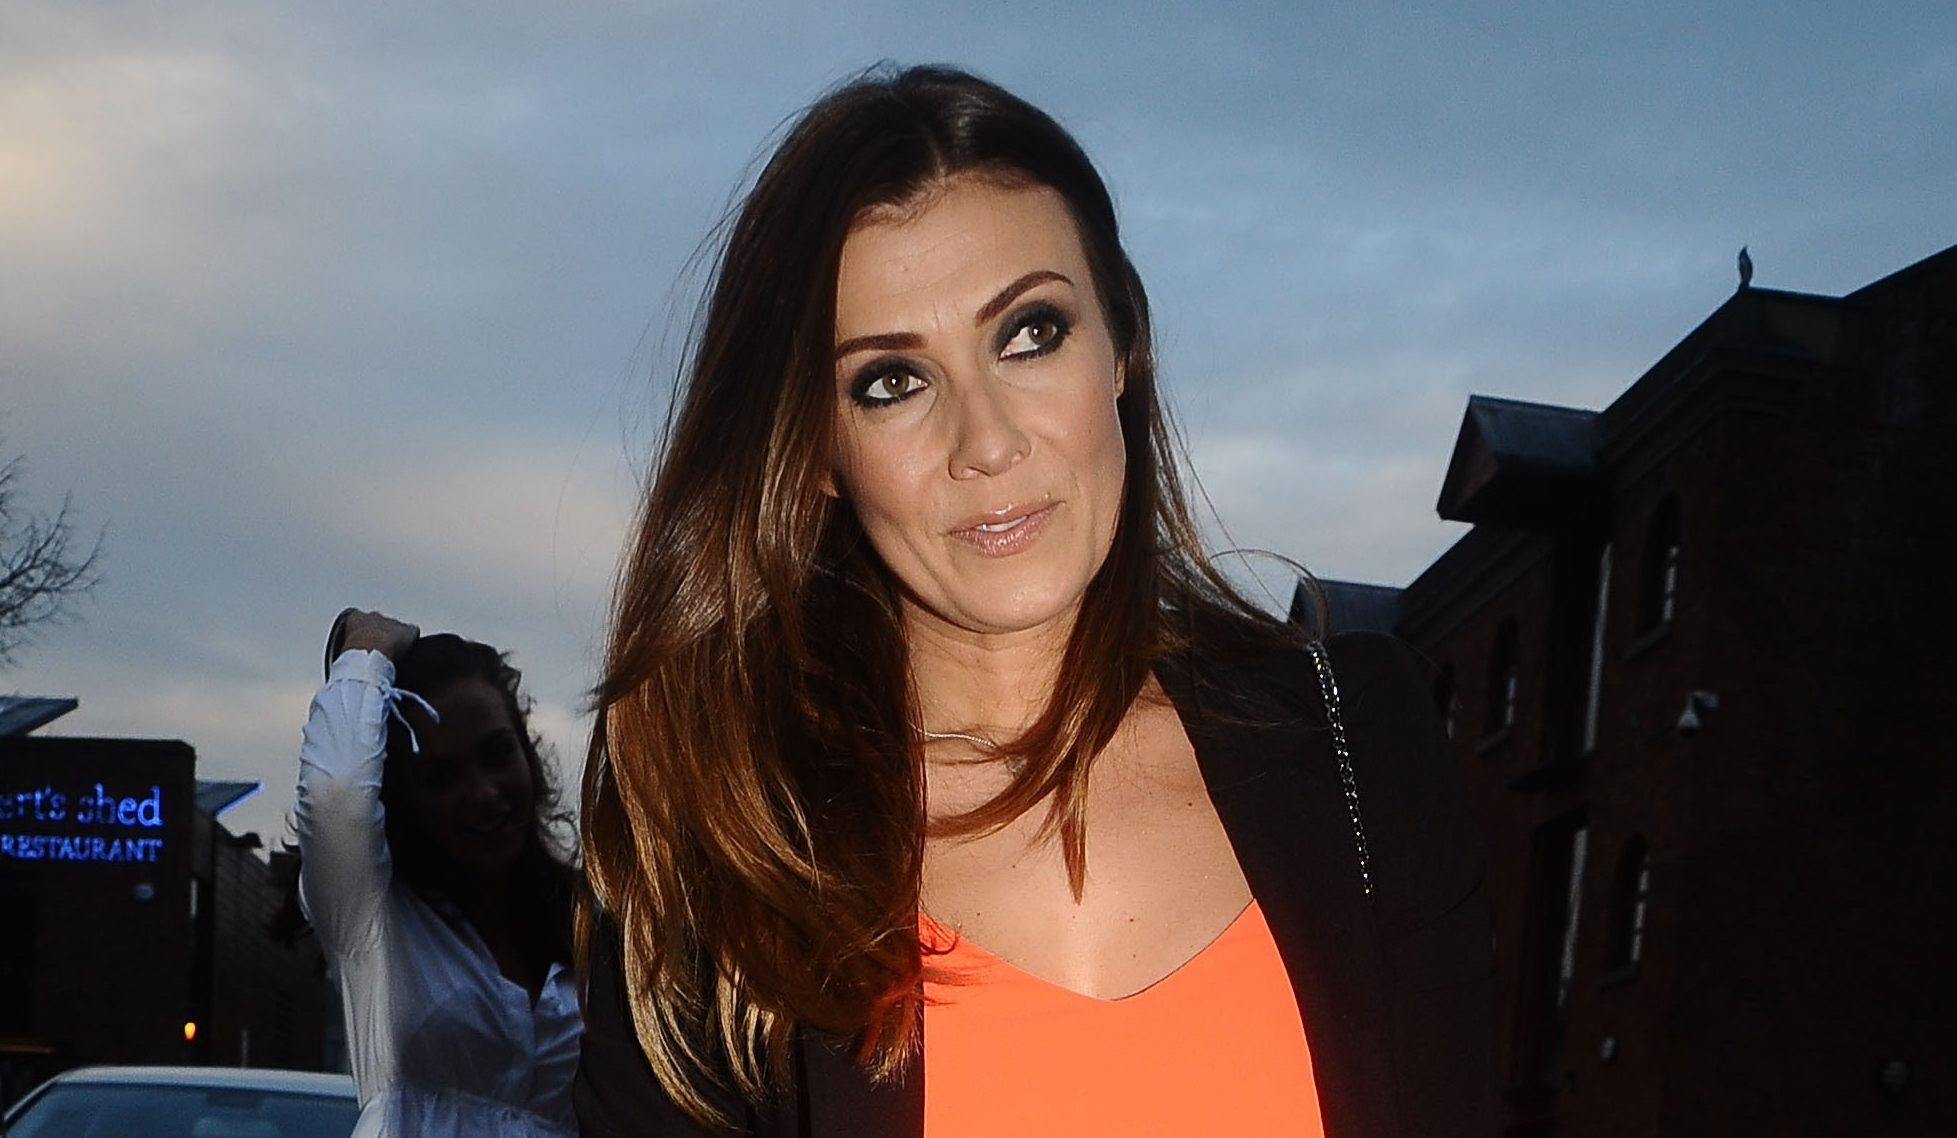 Kym Marsh breaks silence on split from Matt Baker